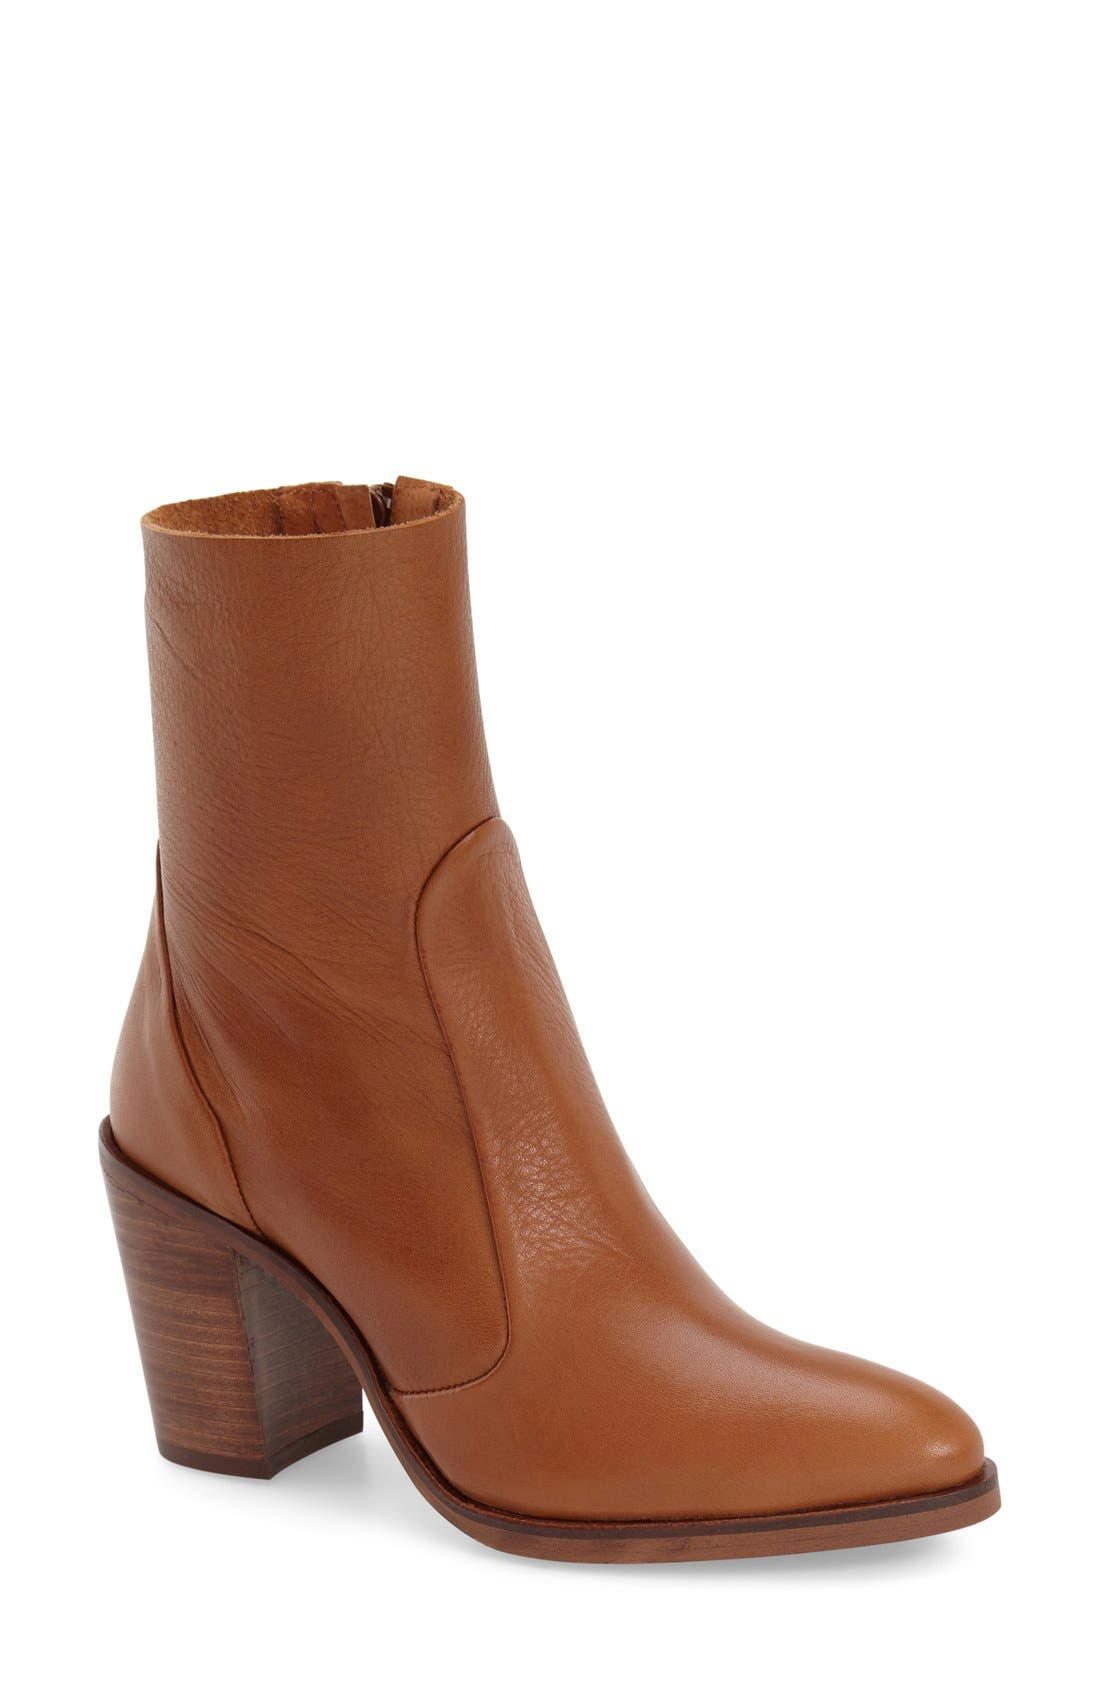 Alternate Image 1 Selected - Topshop 'Magnificent' Bootie (Women)